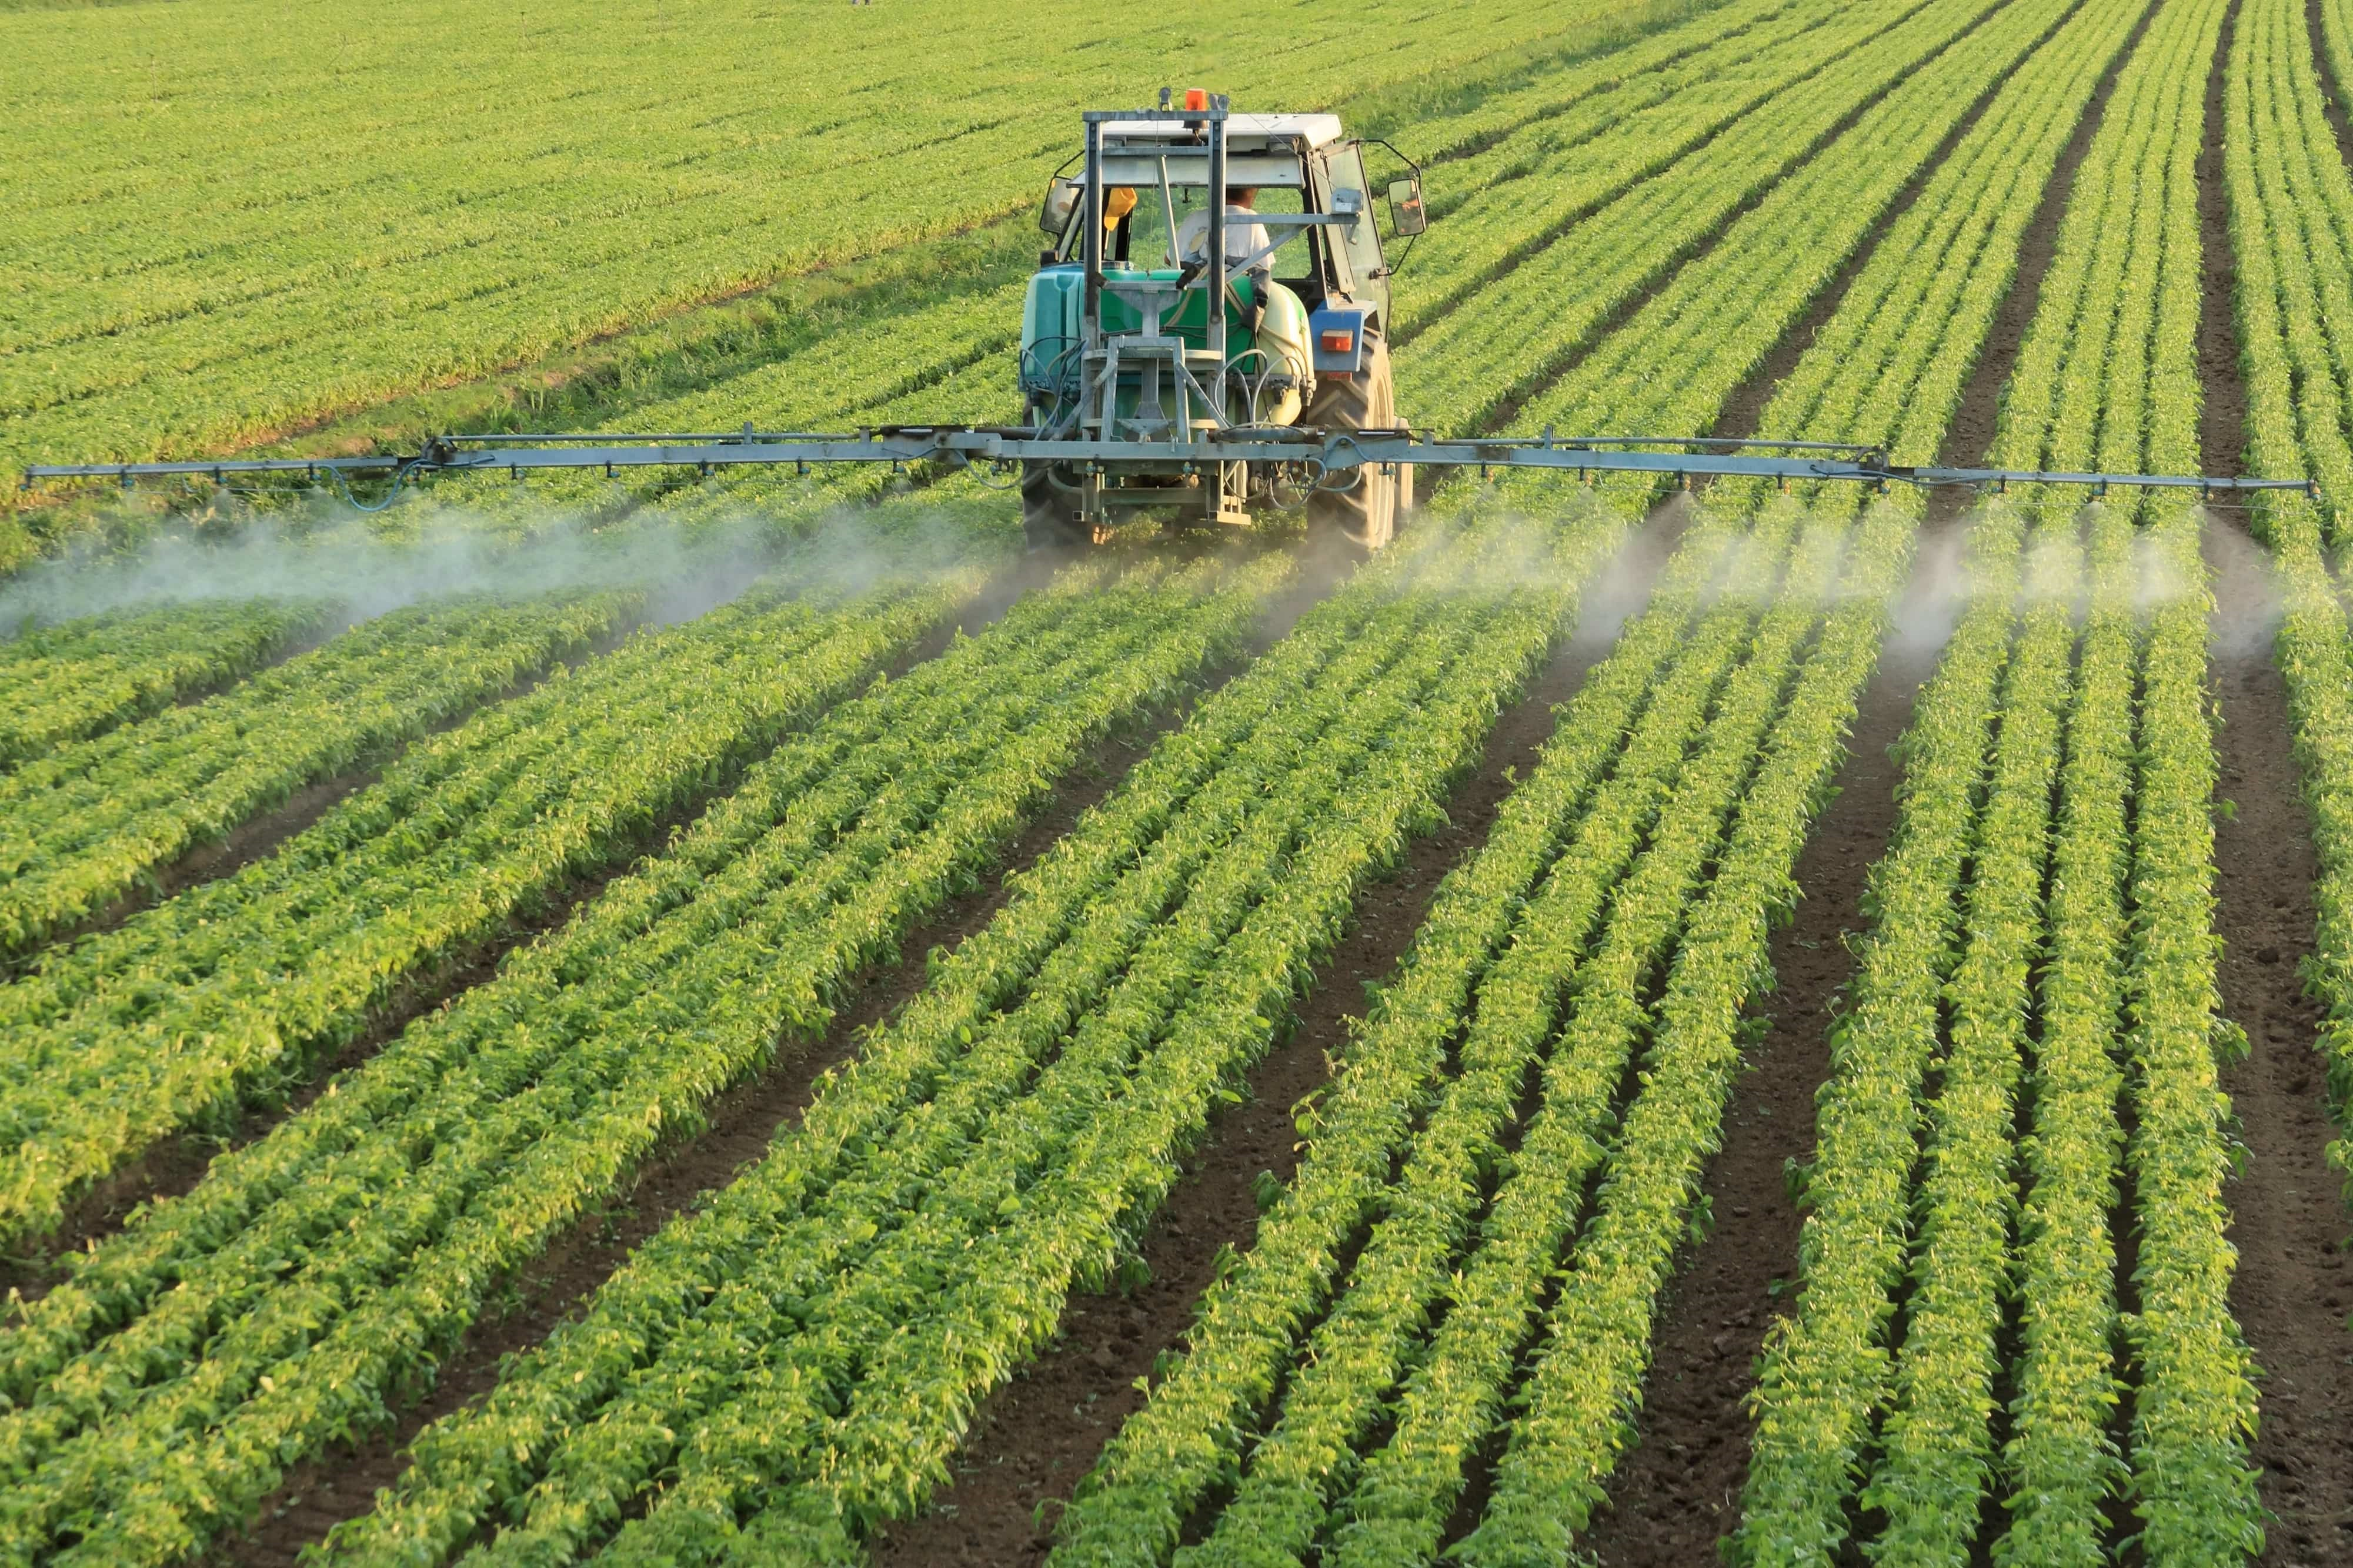 pesticide tractor spray fields.jpg